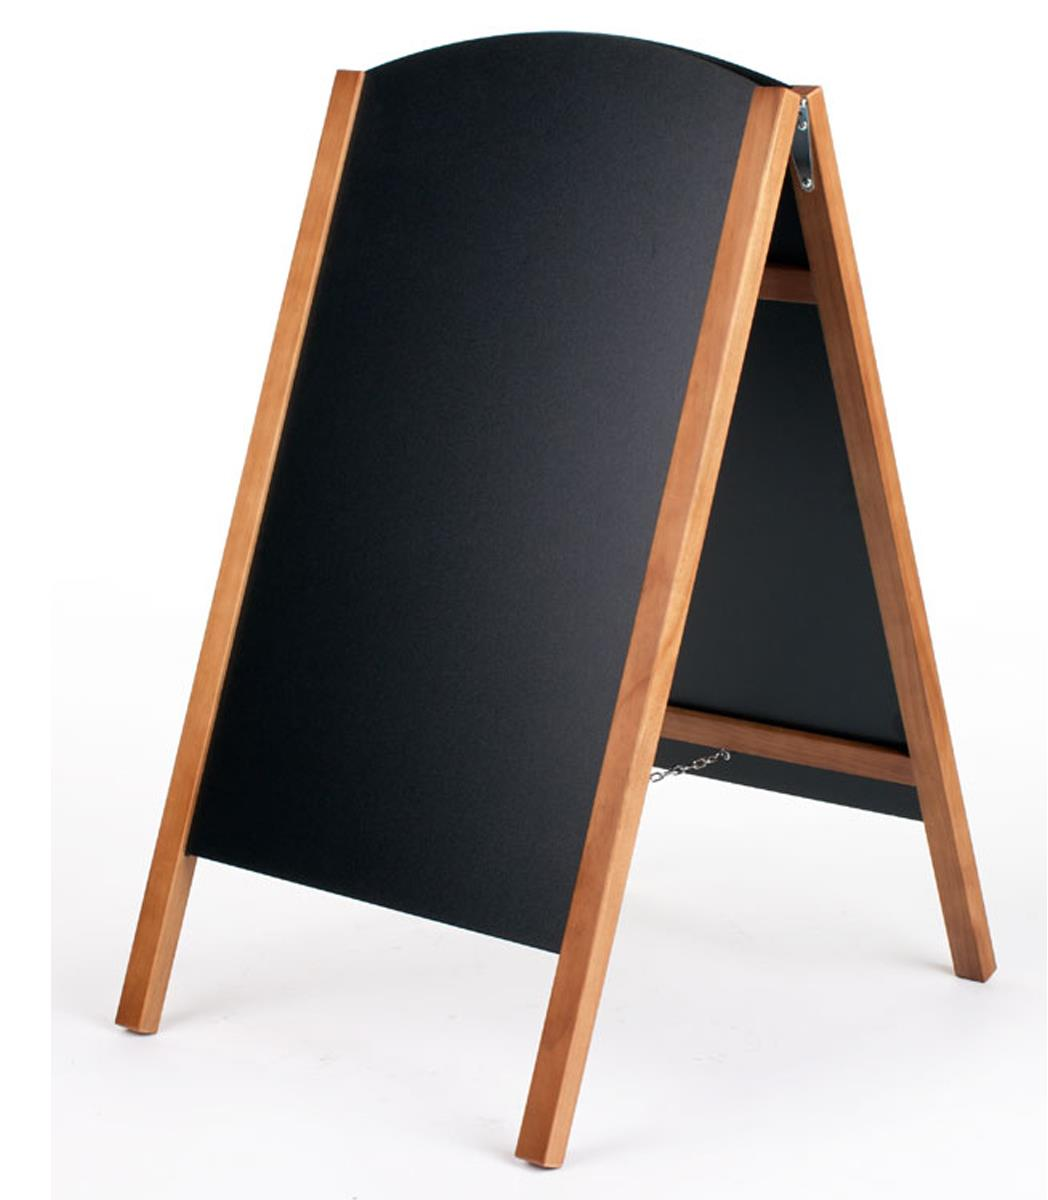 Double Sided Chalkboard Easels For Stick Amp Liquid Chalk